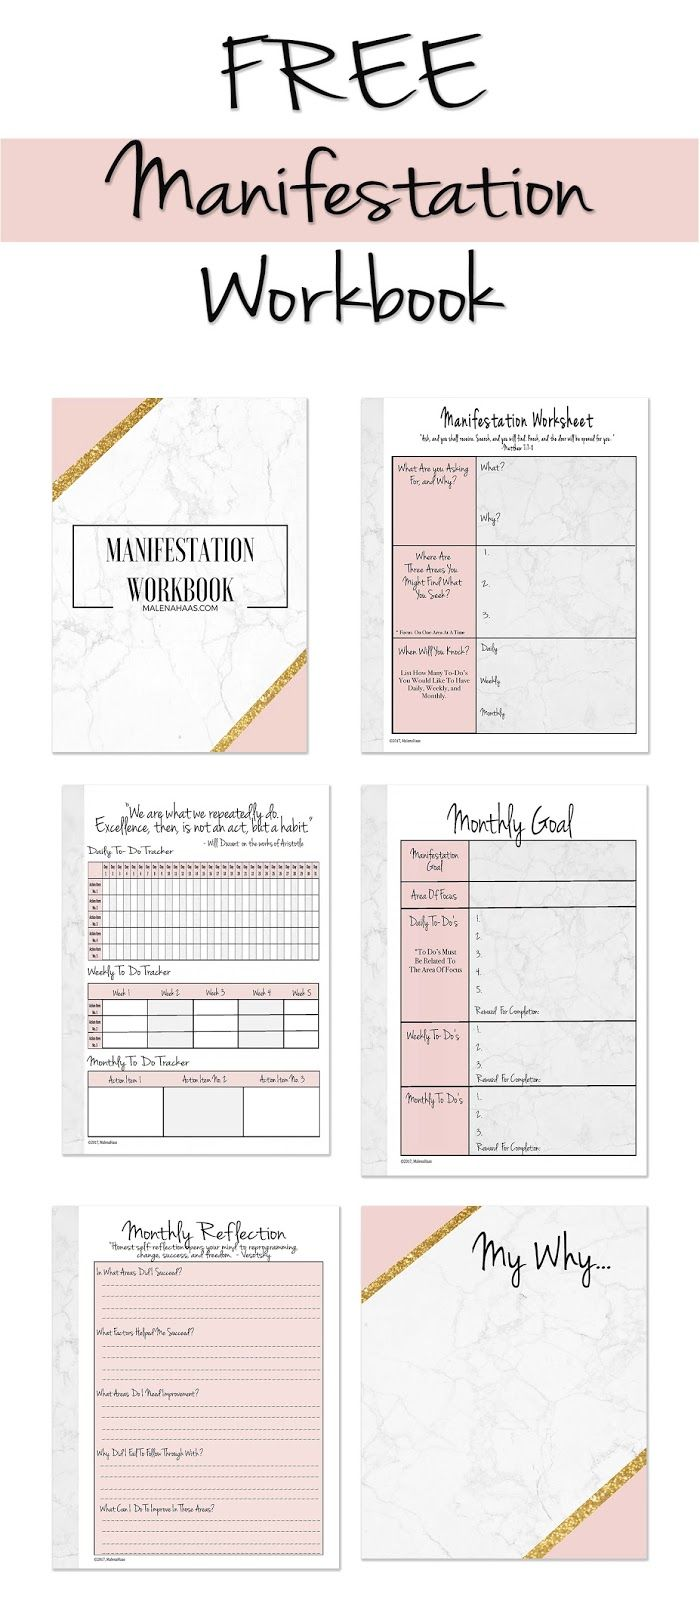 worksheet Life Planning Worksheet 25 unique life plan ideas on pinterest journal bullet ultimate freebie manifestation workbook how to achieve your goals free girllife plan